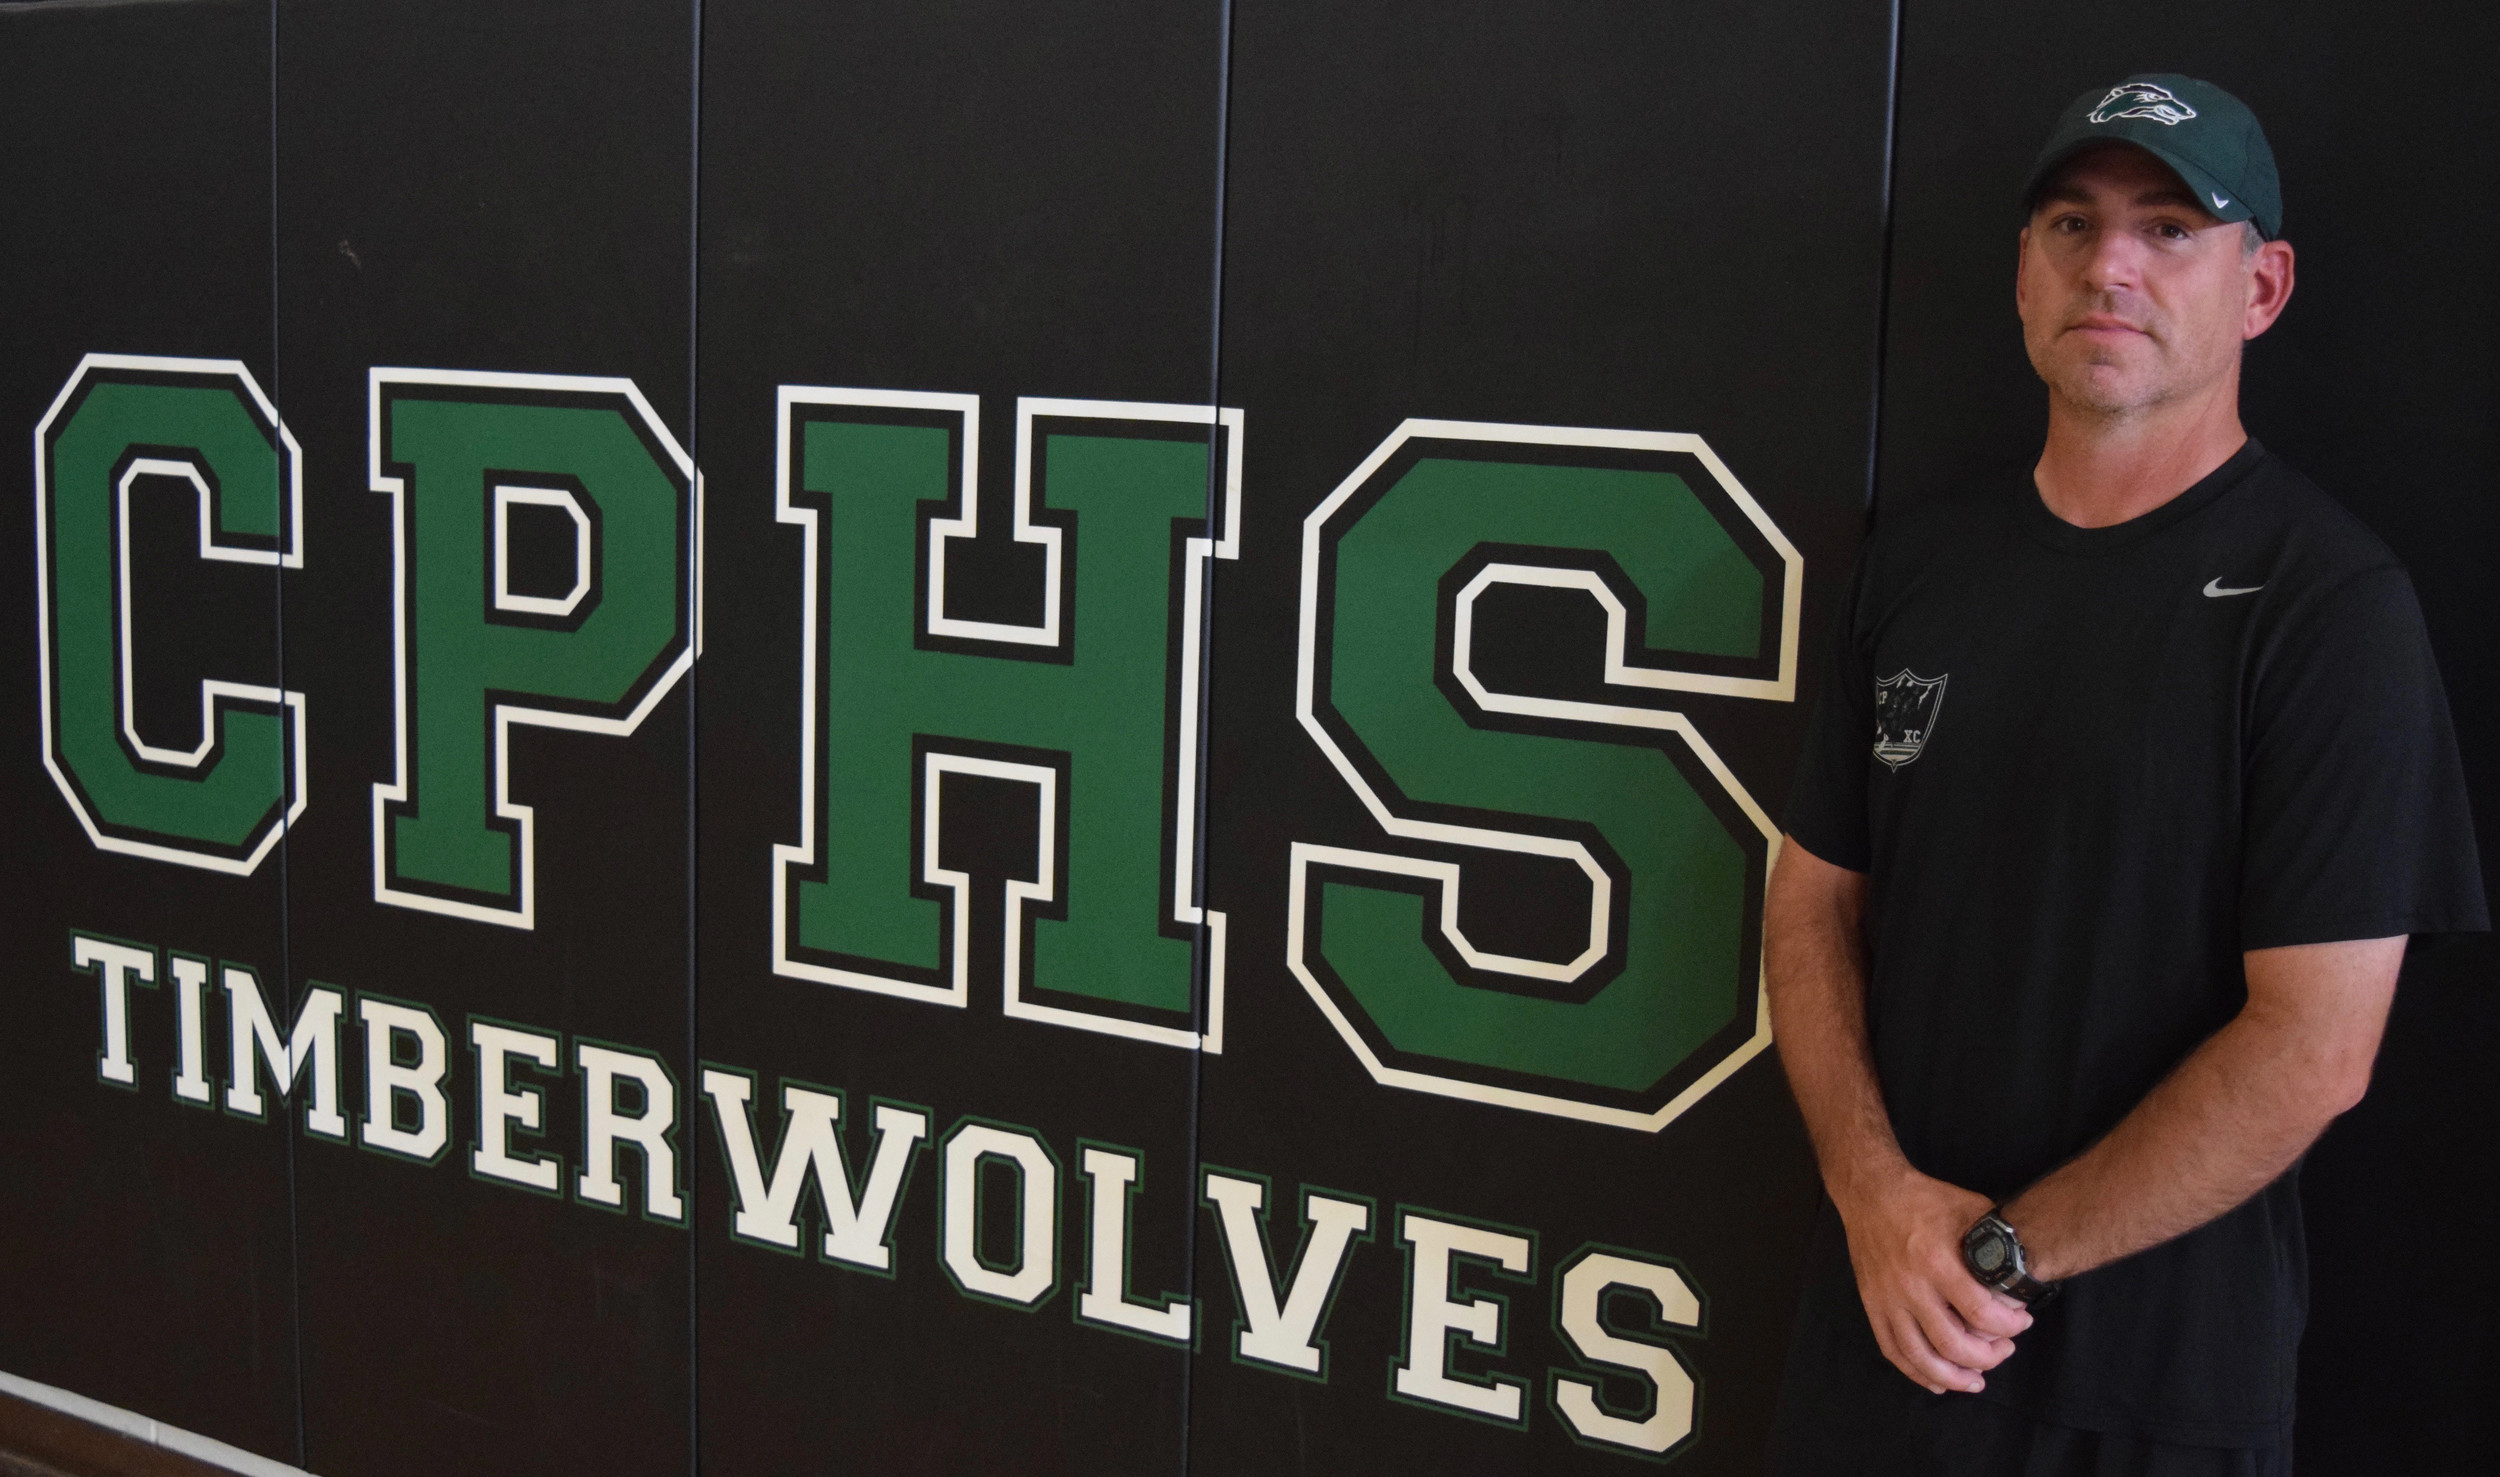 Jason Grennier was named the new Cedar Park cross country coach last month. He was the head cross country coach for 10 years at Hebron High School before spending last season at Prosper High School.